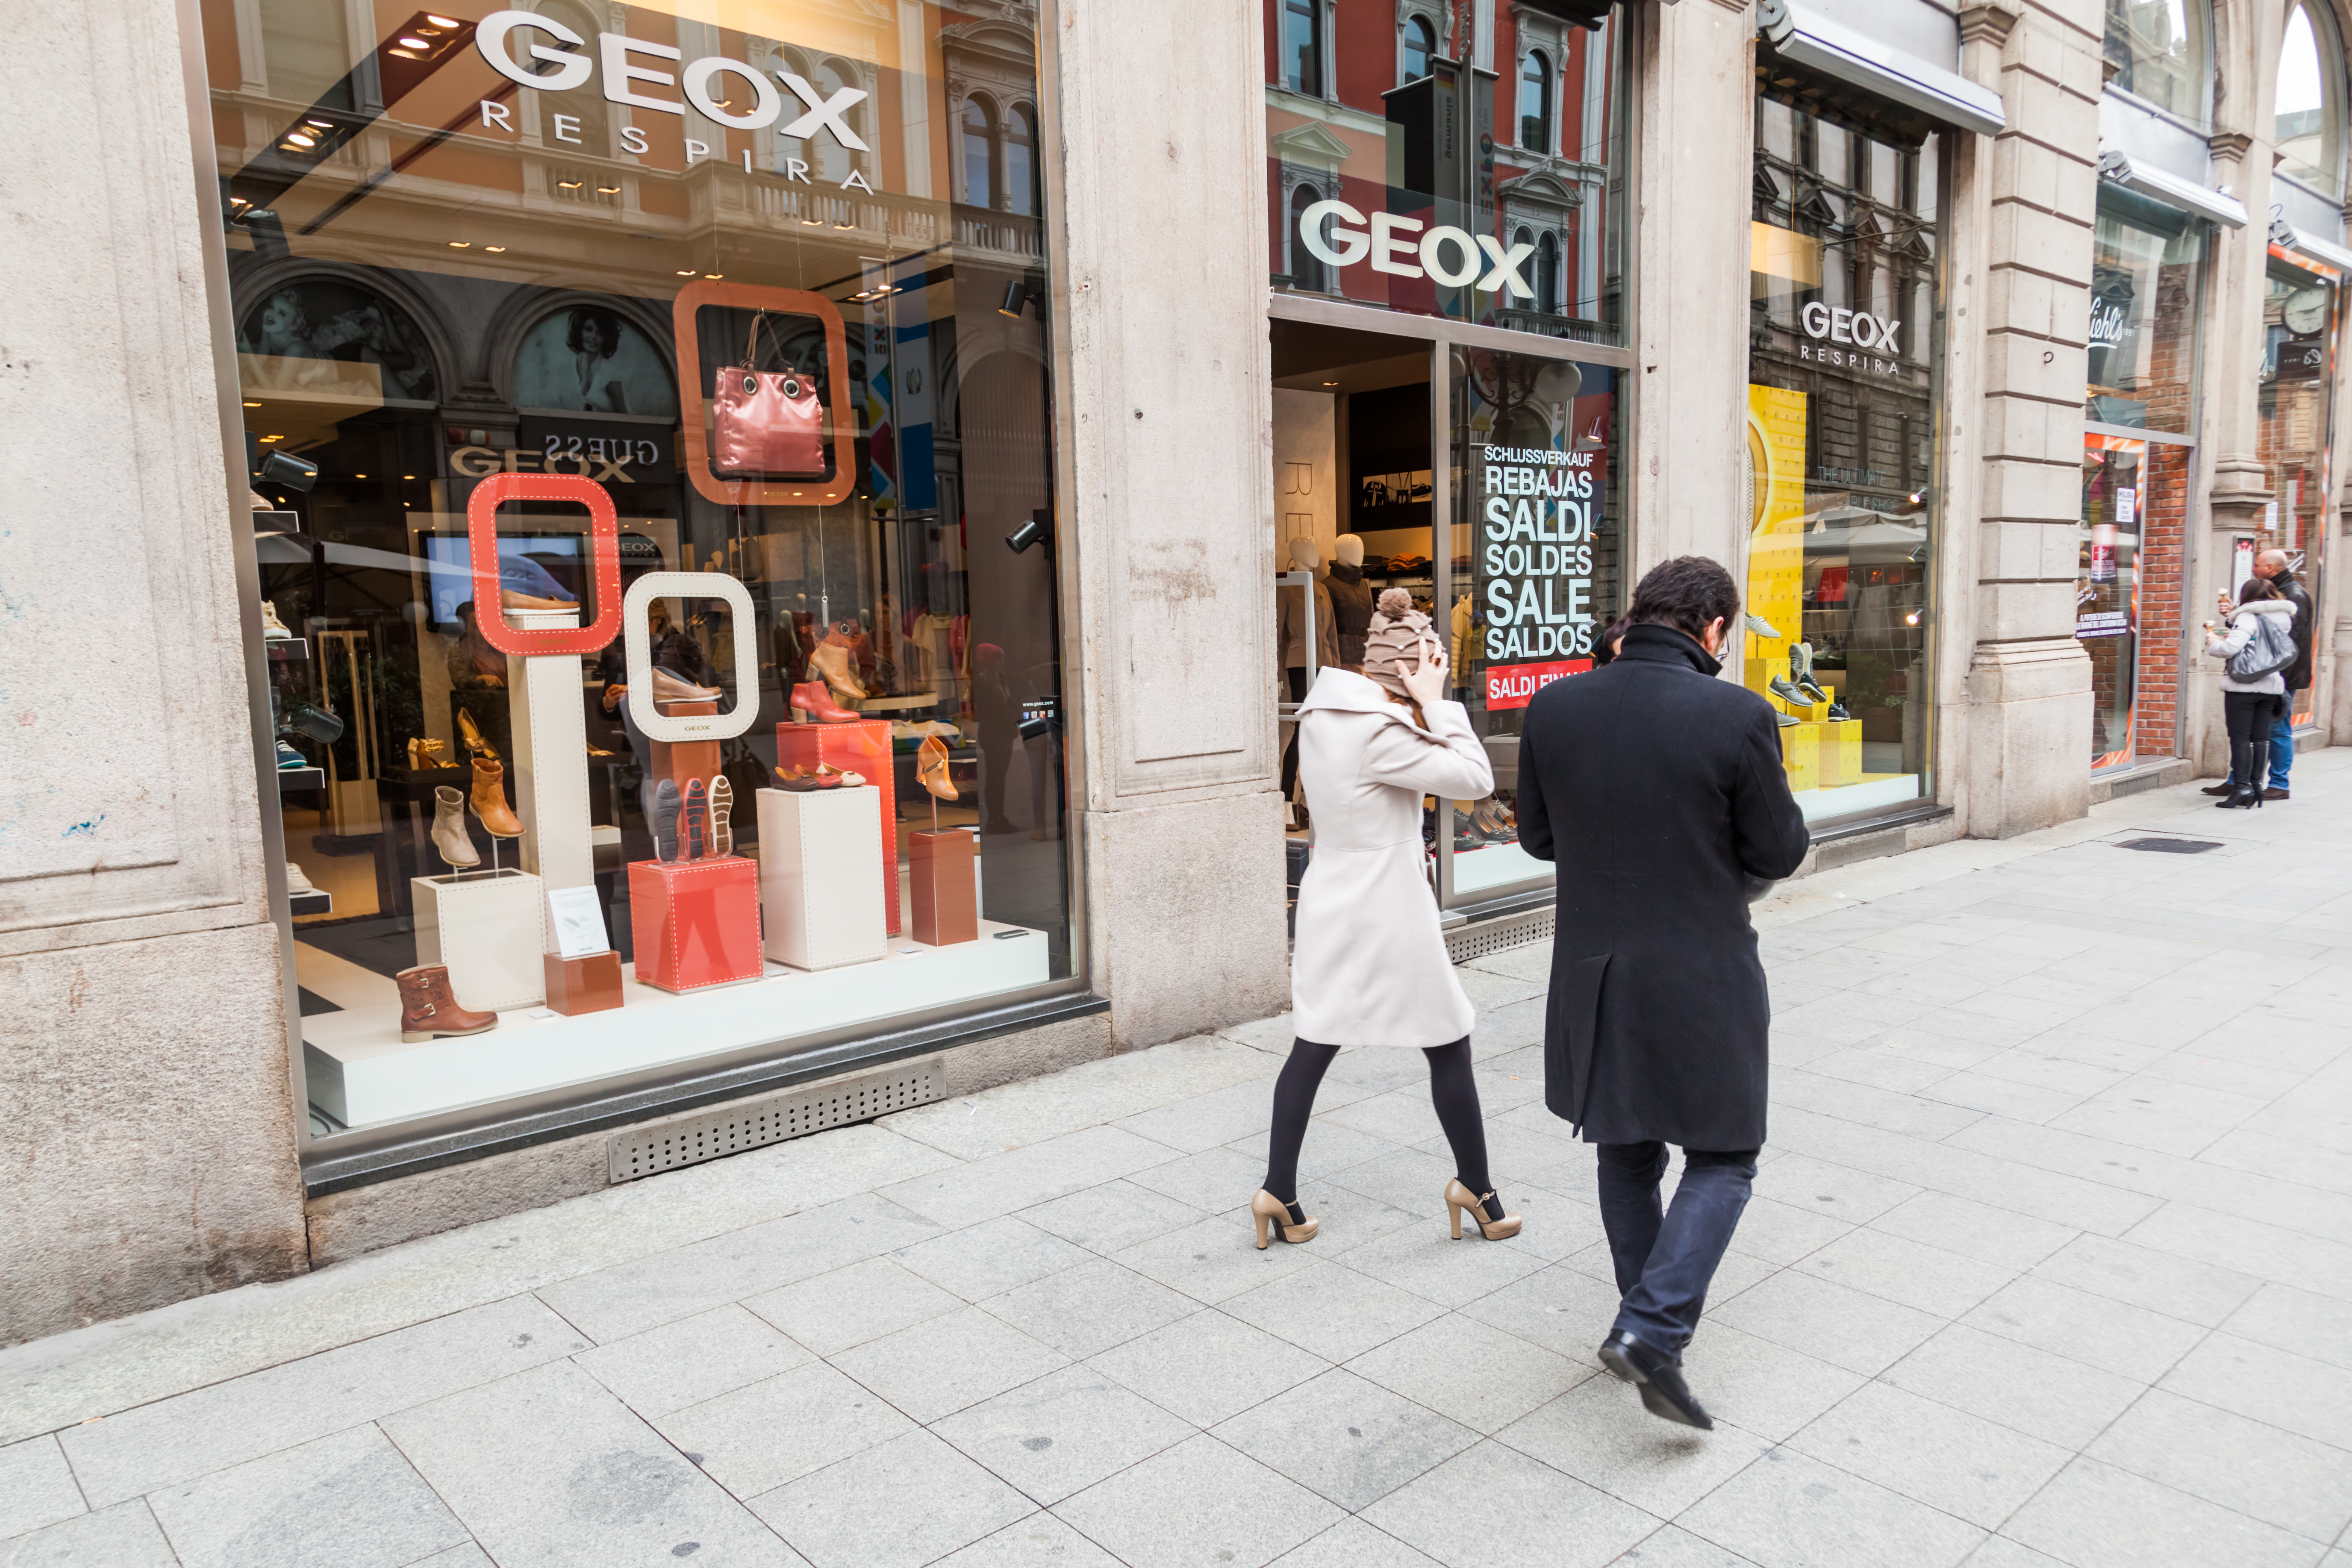 Italian footwear brand Geox is closing stores amid COVID-19's rapid spread that has restricted movement and commerce across the country.